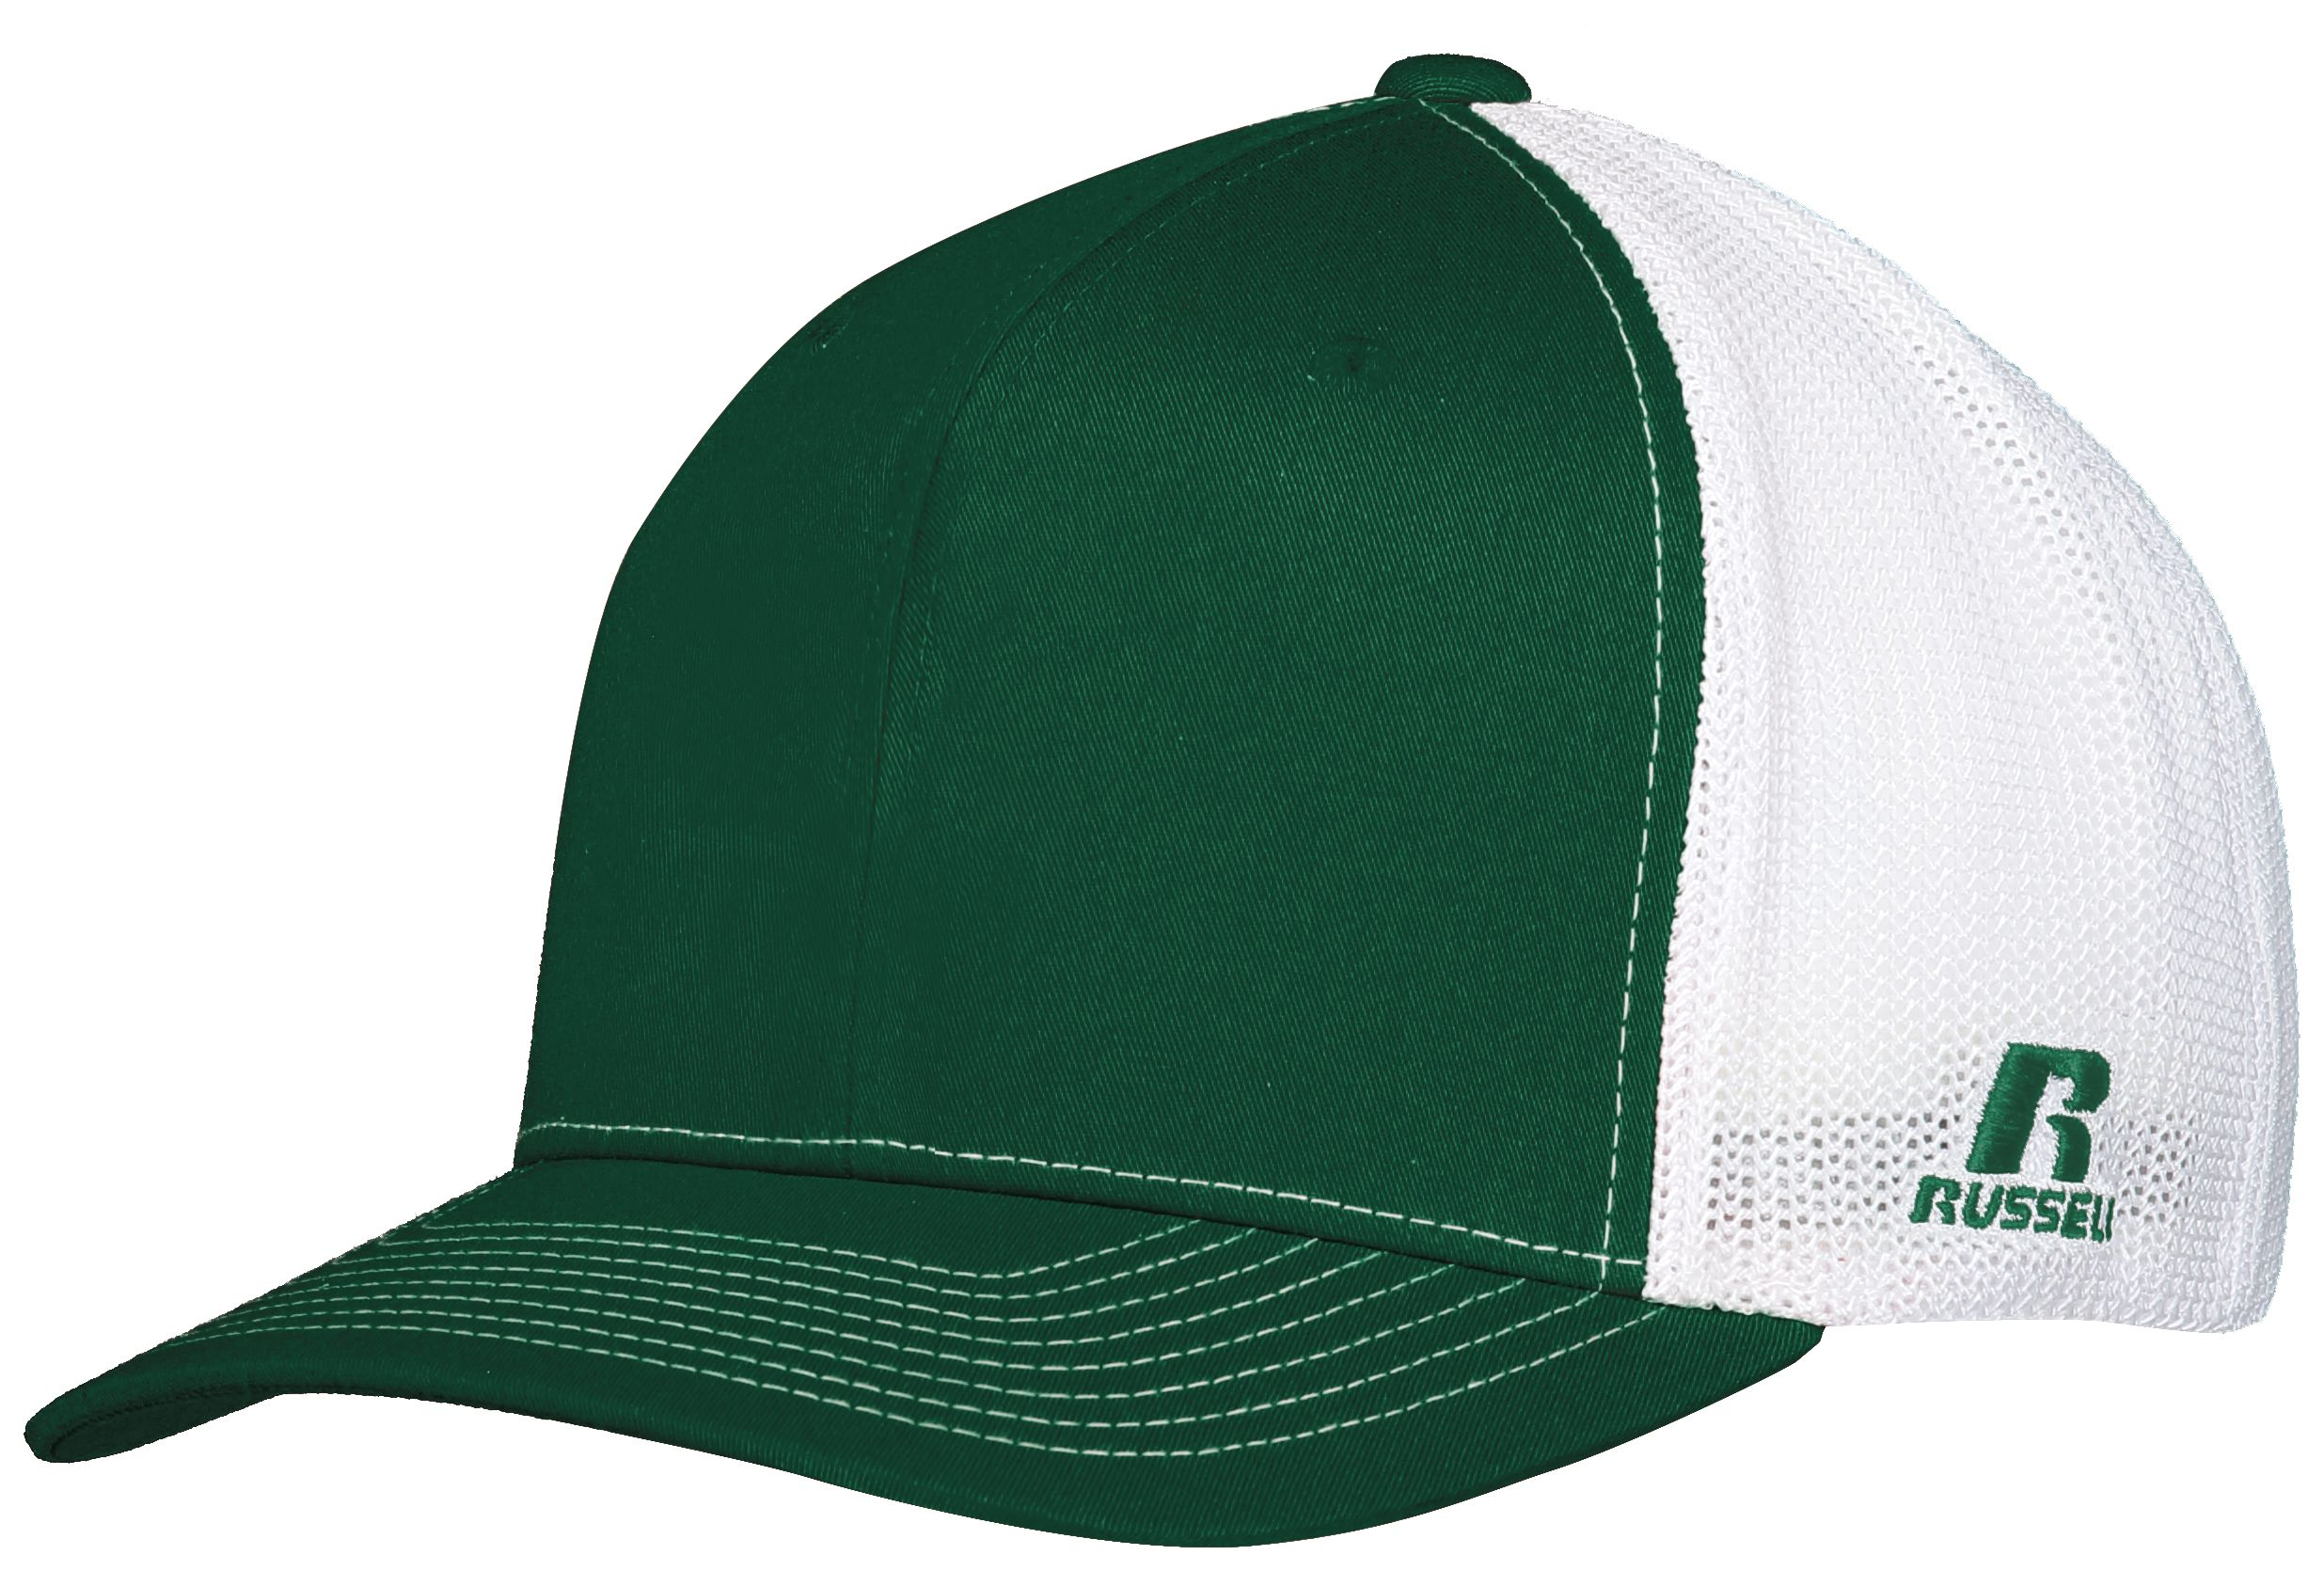 Youth Flexfit Twill Mesh Cap - Dark Green/white